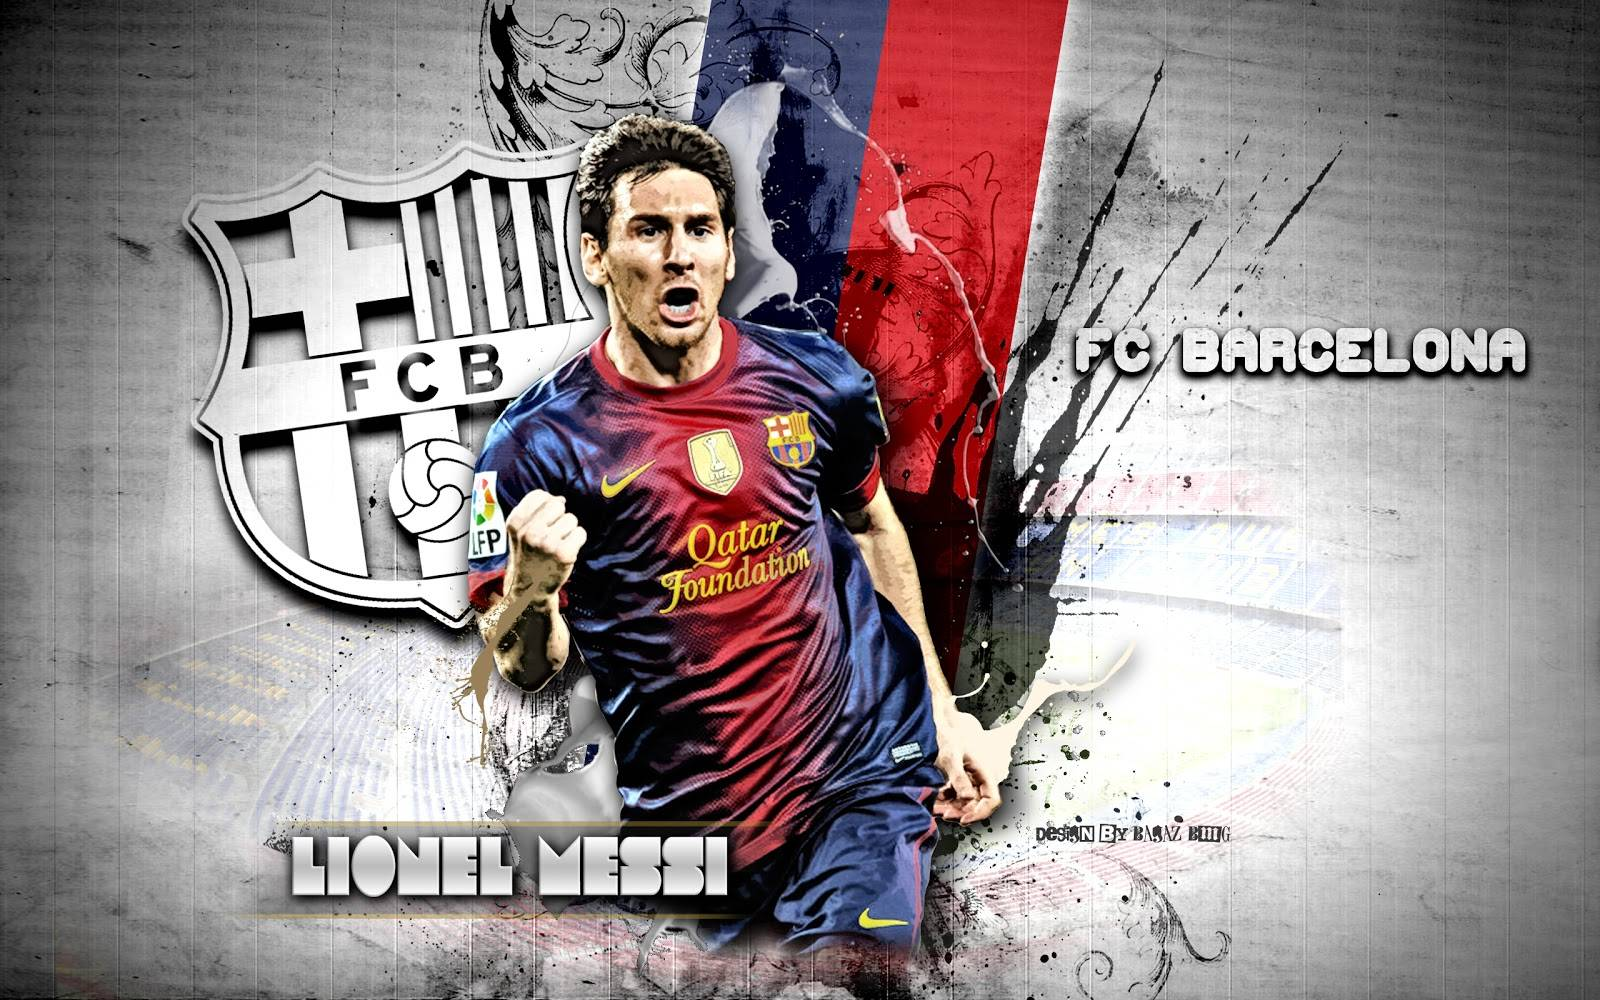 Wallpapers For > Messi Wallpaper 2014 Hd